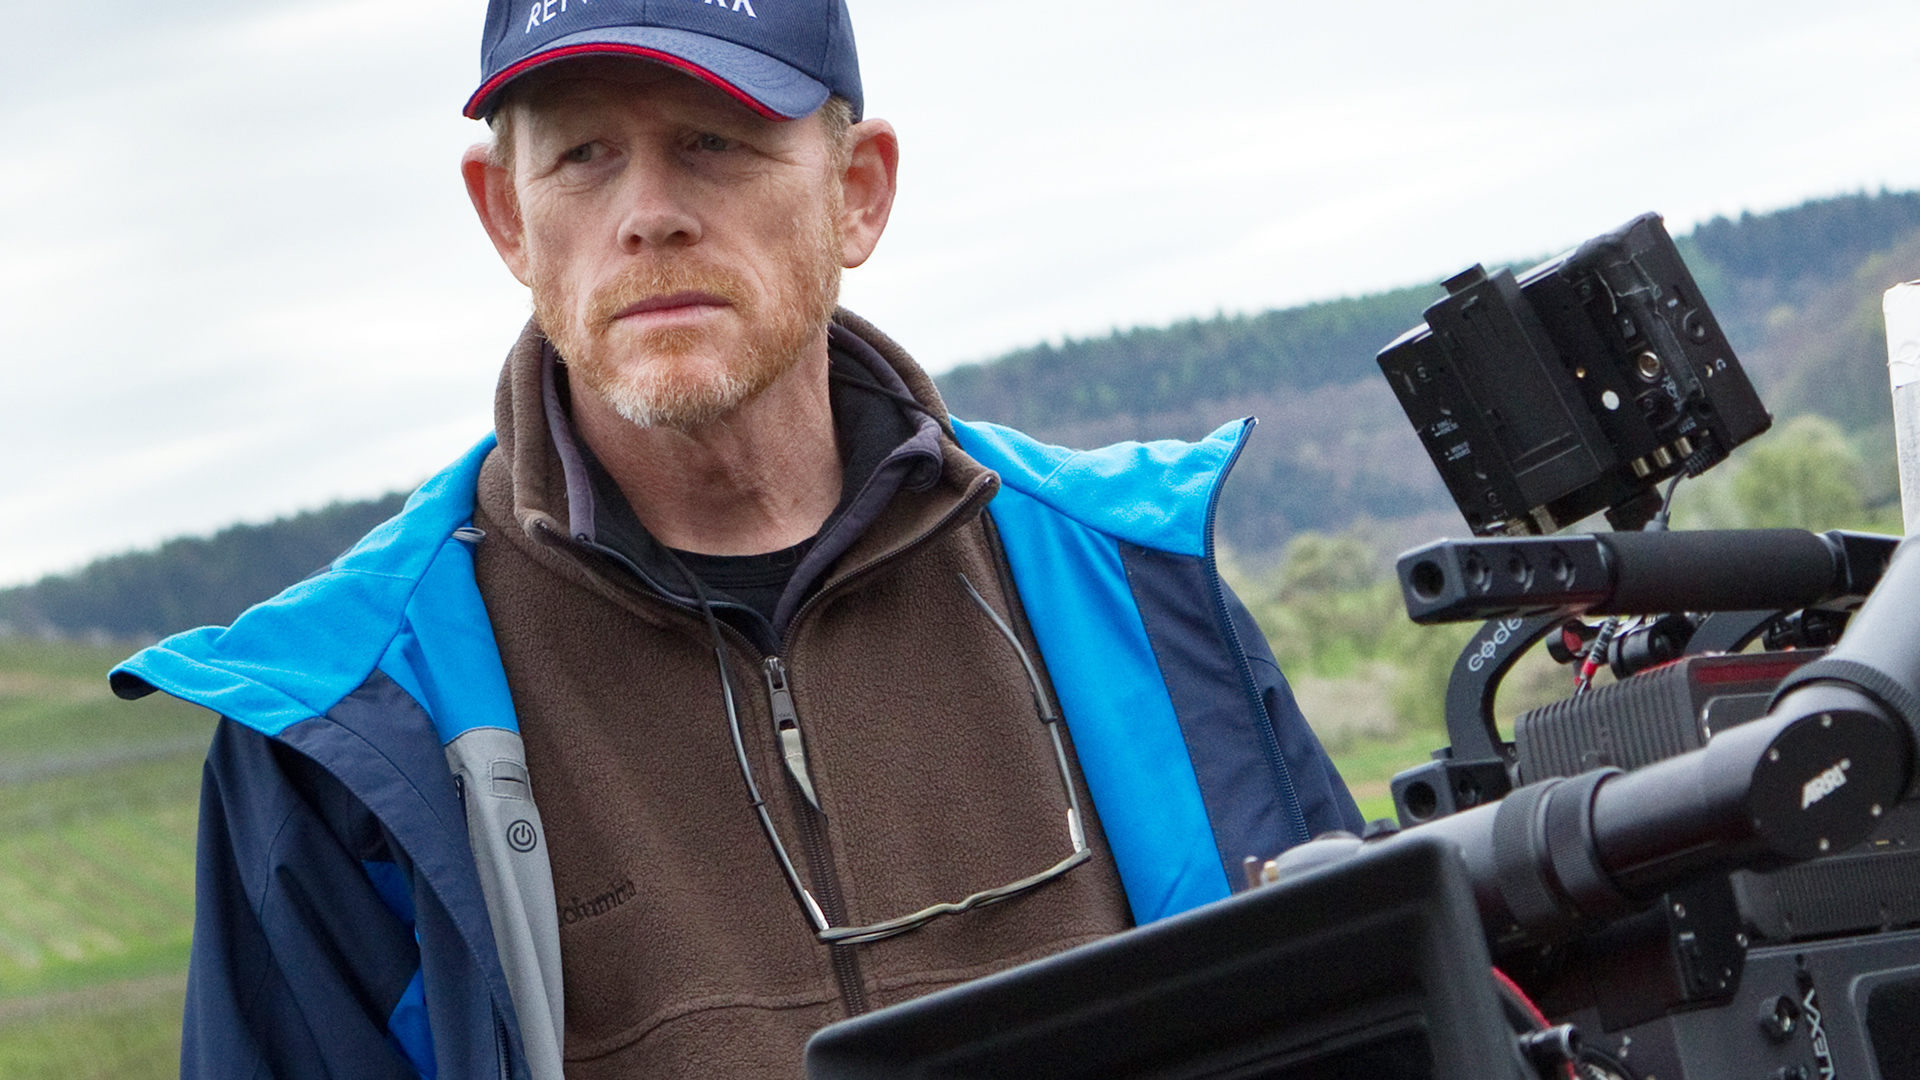 ron howard 2016ron howard films, ron howard movies, ron howard filmleri, ron howard contact information, ron howard actor, ron howard instagram, ron howard wife, ron howard bio, ron howard filmleri izle, ron howard height, ron howard gta, ron howard wiki, ron howard (, ron howard twitter, ron howard quotes, ron howard daughter, ron howard beatles, ron howard imdb, ron howard 2016, ron howard genius